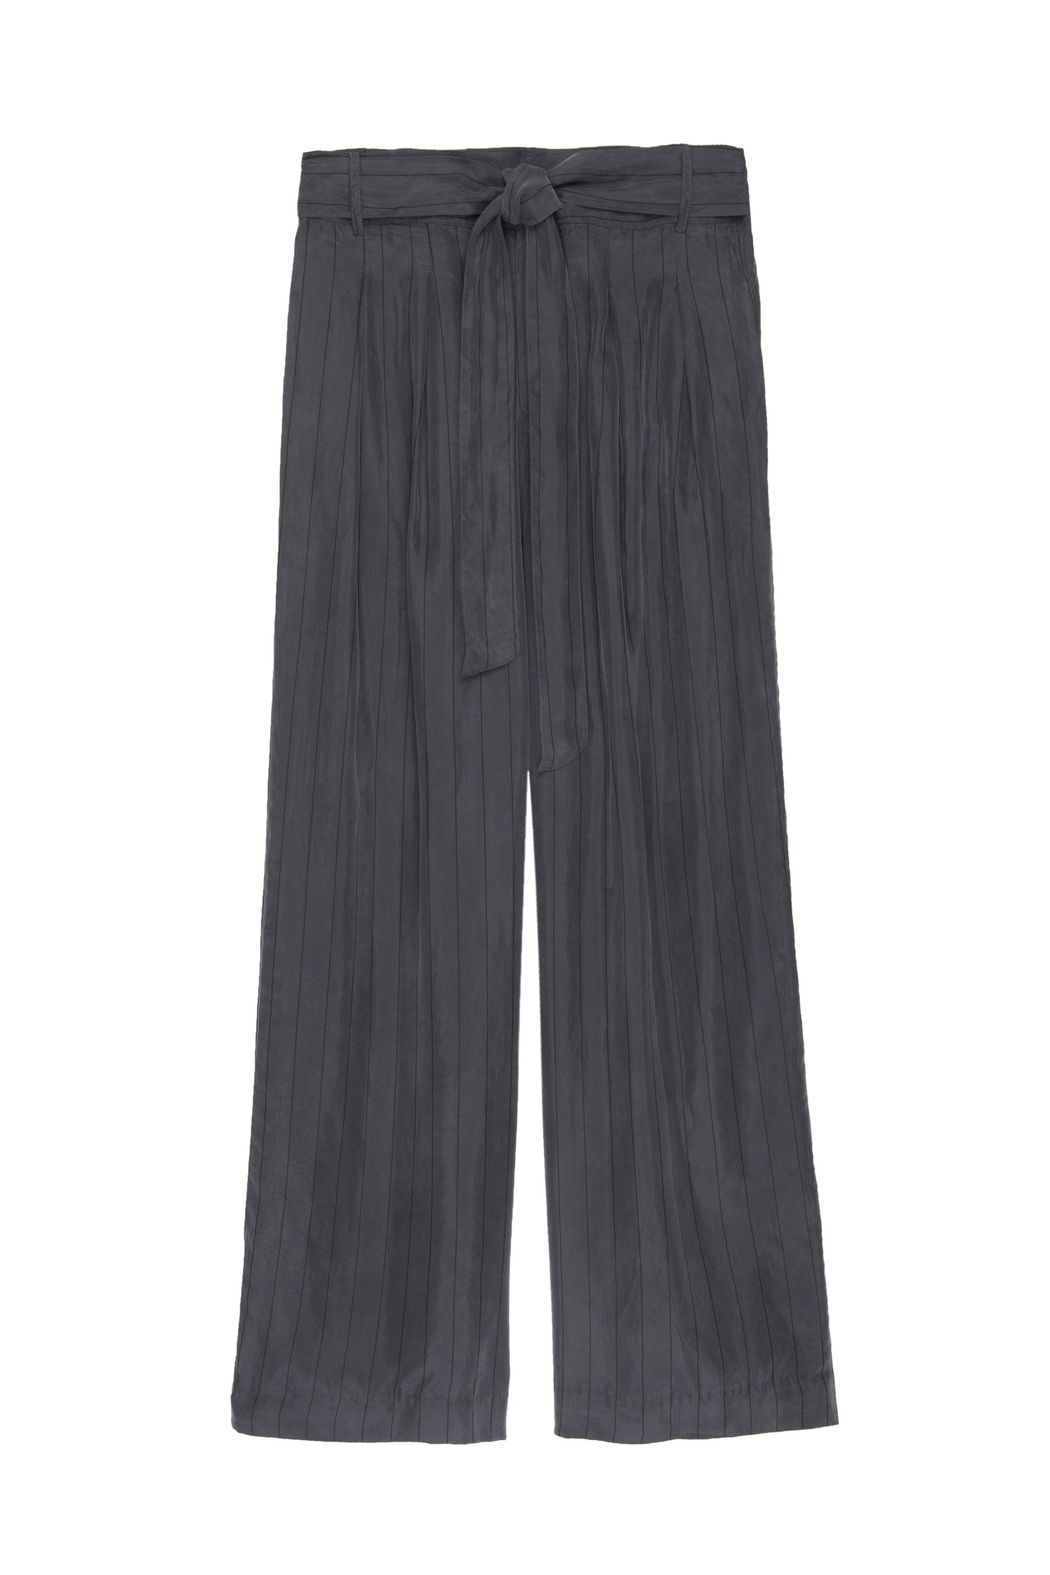 Rails Jenna Charcoal/black Pinstripe - Side Cropped Image